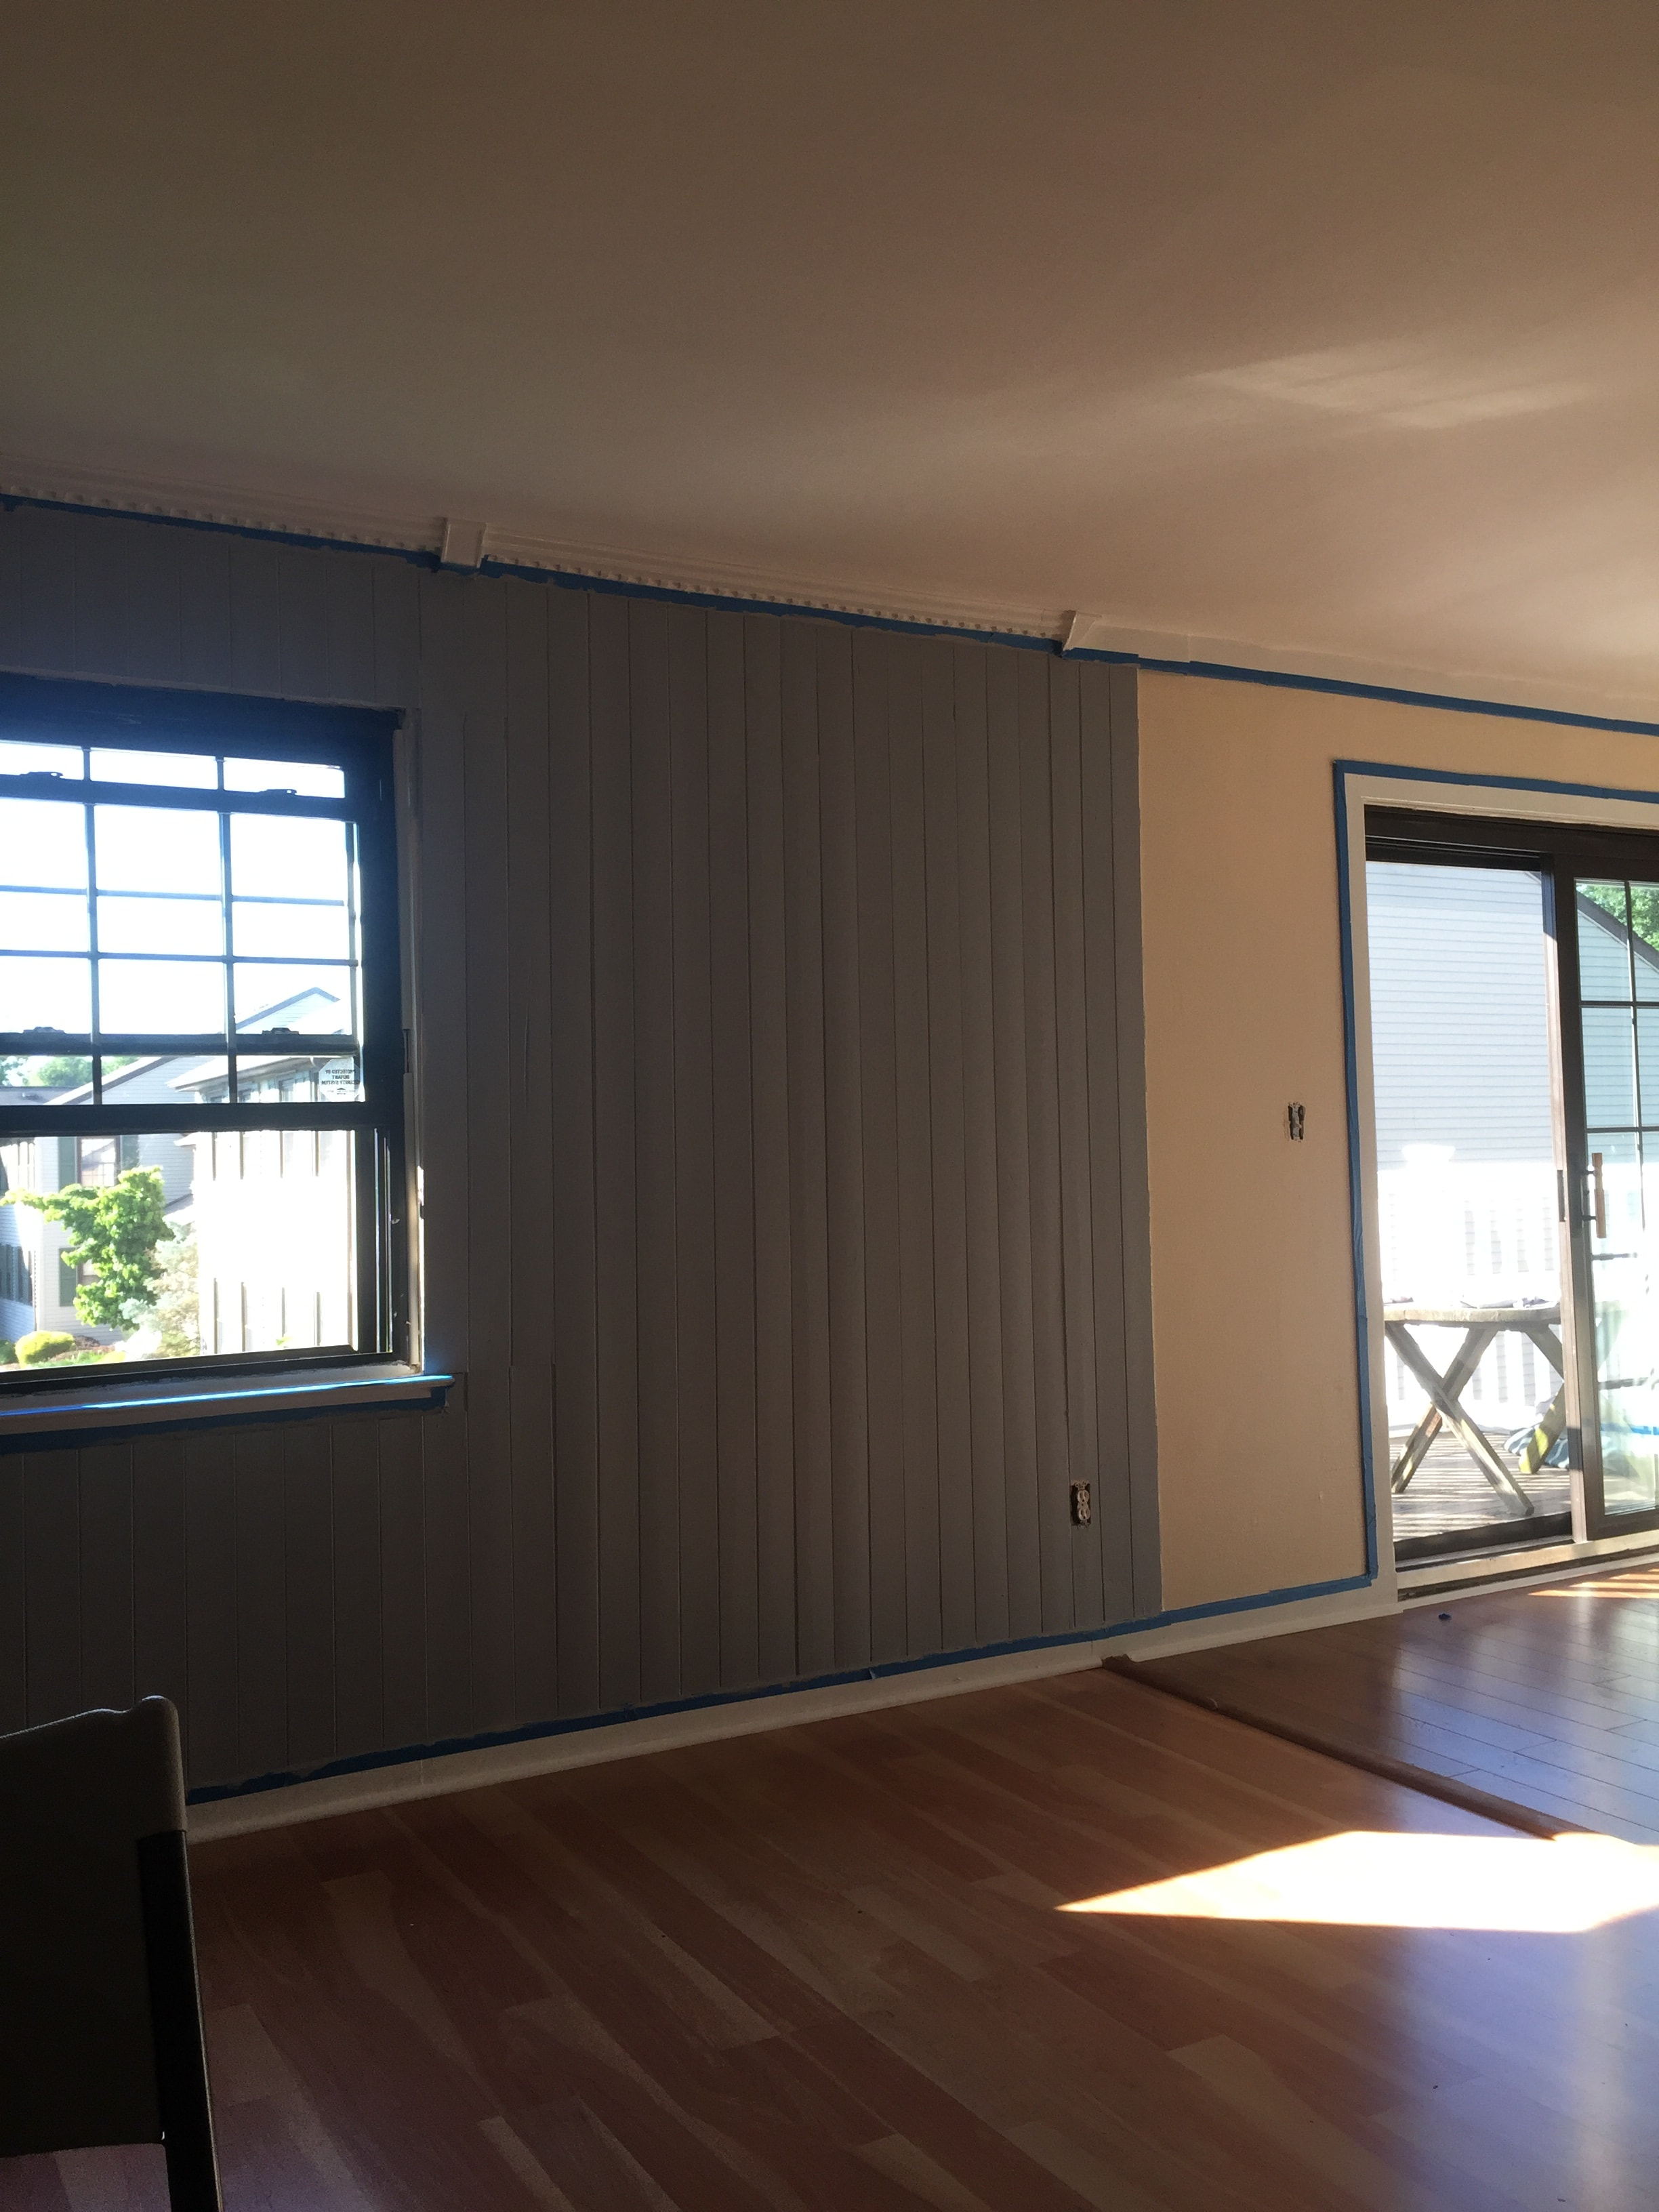 We painted with low VOC, water based paints for easy cleanup.